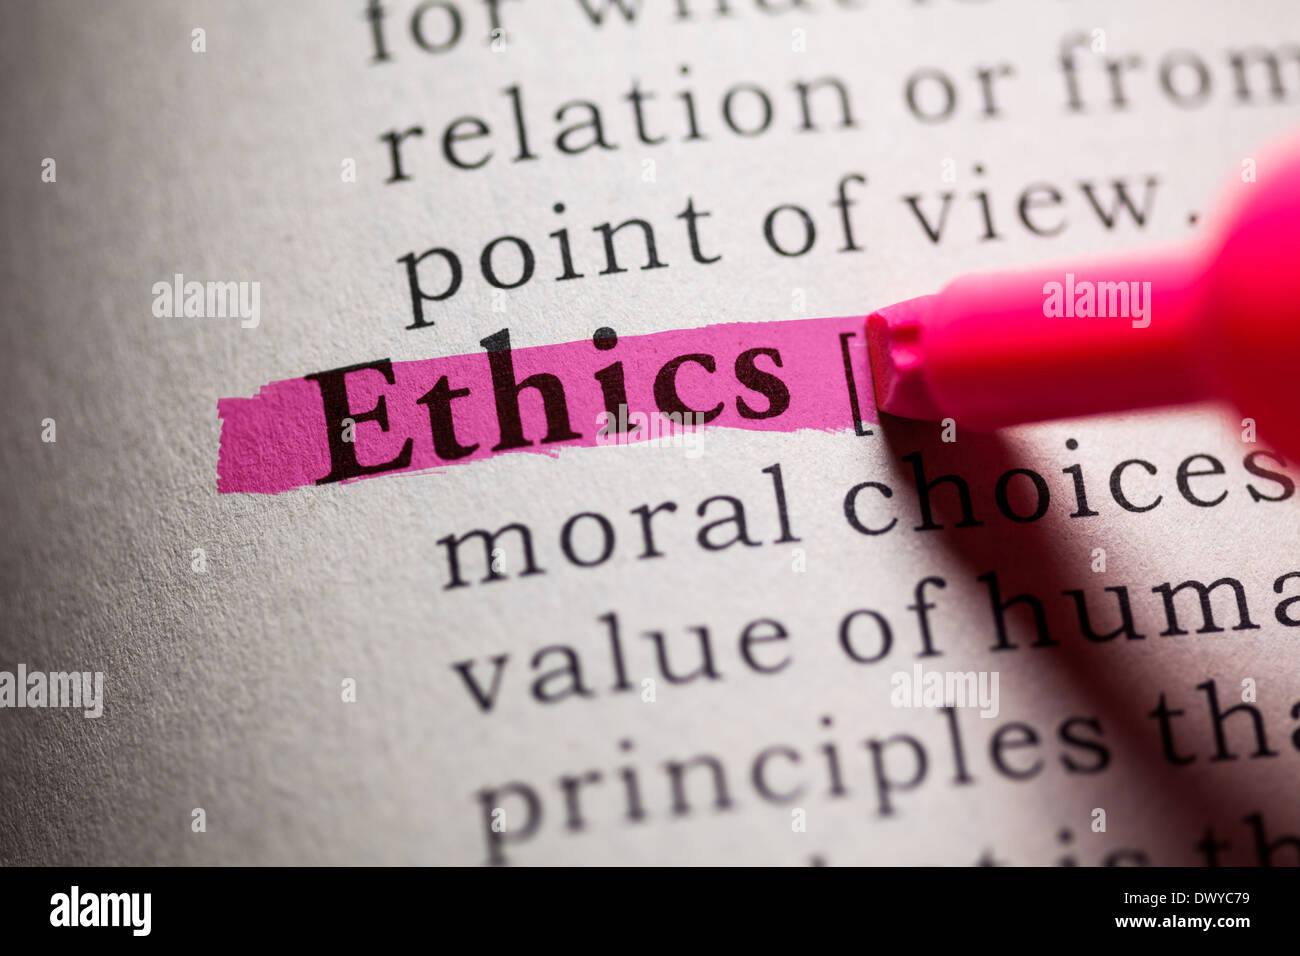 Fake Dictionary, definition of the word Ethics. - Stock Image